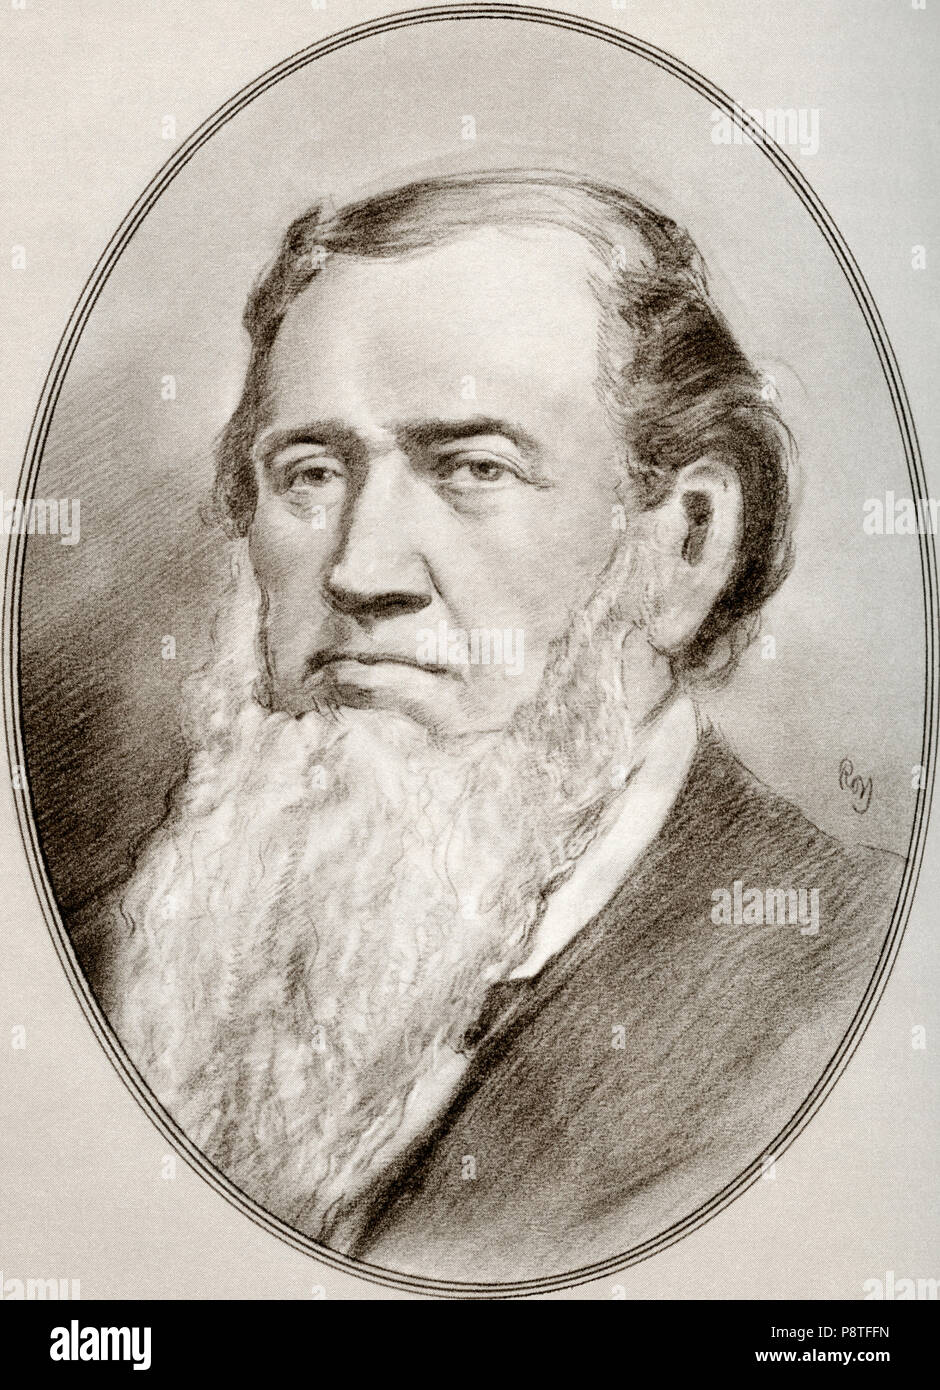 Brigham Young, 1801 – 1877.  American religious leader, politician, settler and the second president of The Church of Jesus Christ of Latter-day Saints. He founded Salt Lake City and served as the first governor of the Utah Territory.  Illustration by Gordon Ross, American artist and illustrator (1873-1946), from Living Biographies of Religious Leaders. - Stock Image